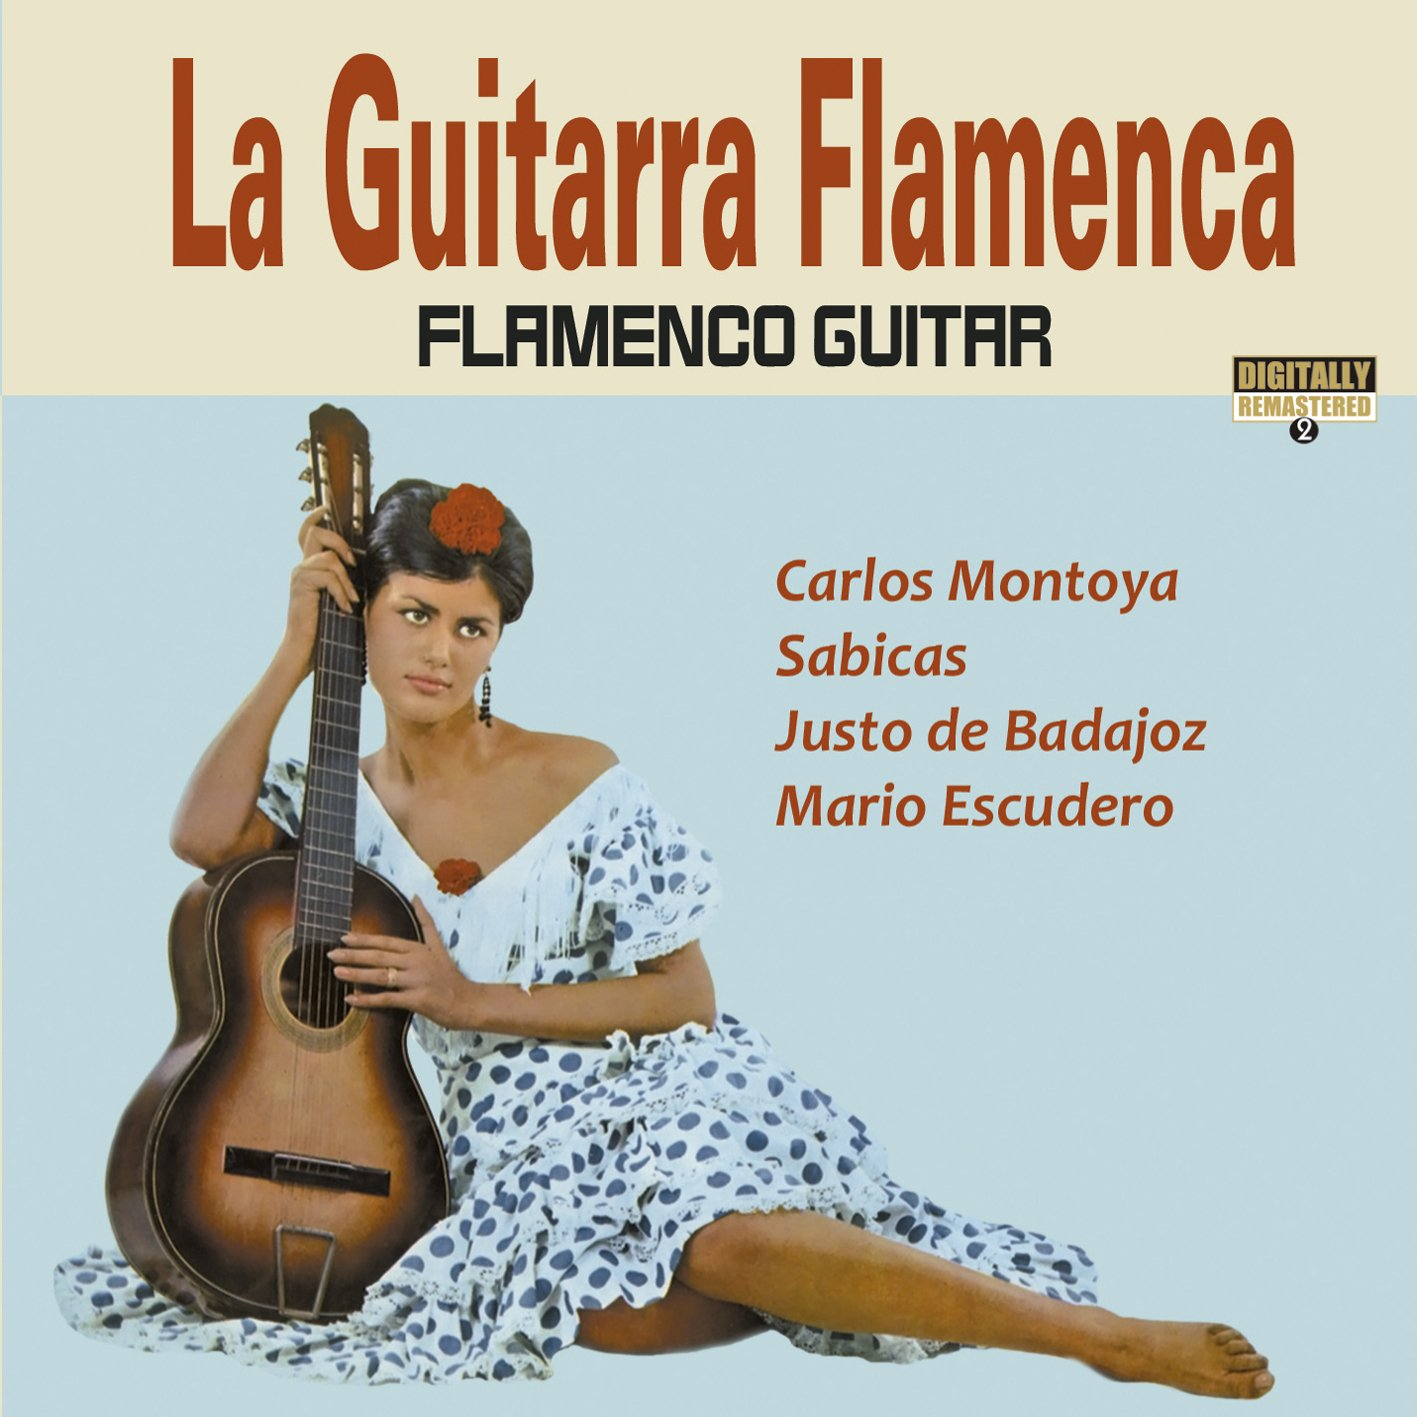 La Guitarra Flamenca: Flamenco Guitar: Amazon.es: Música